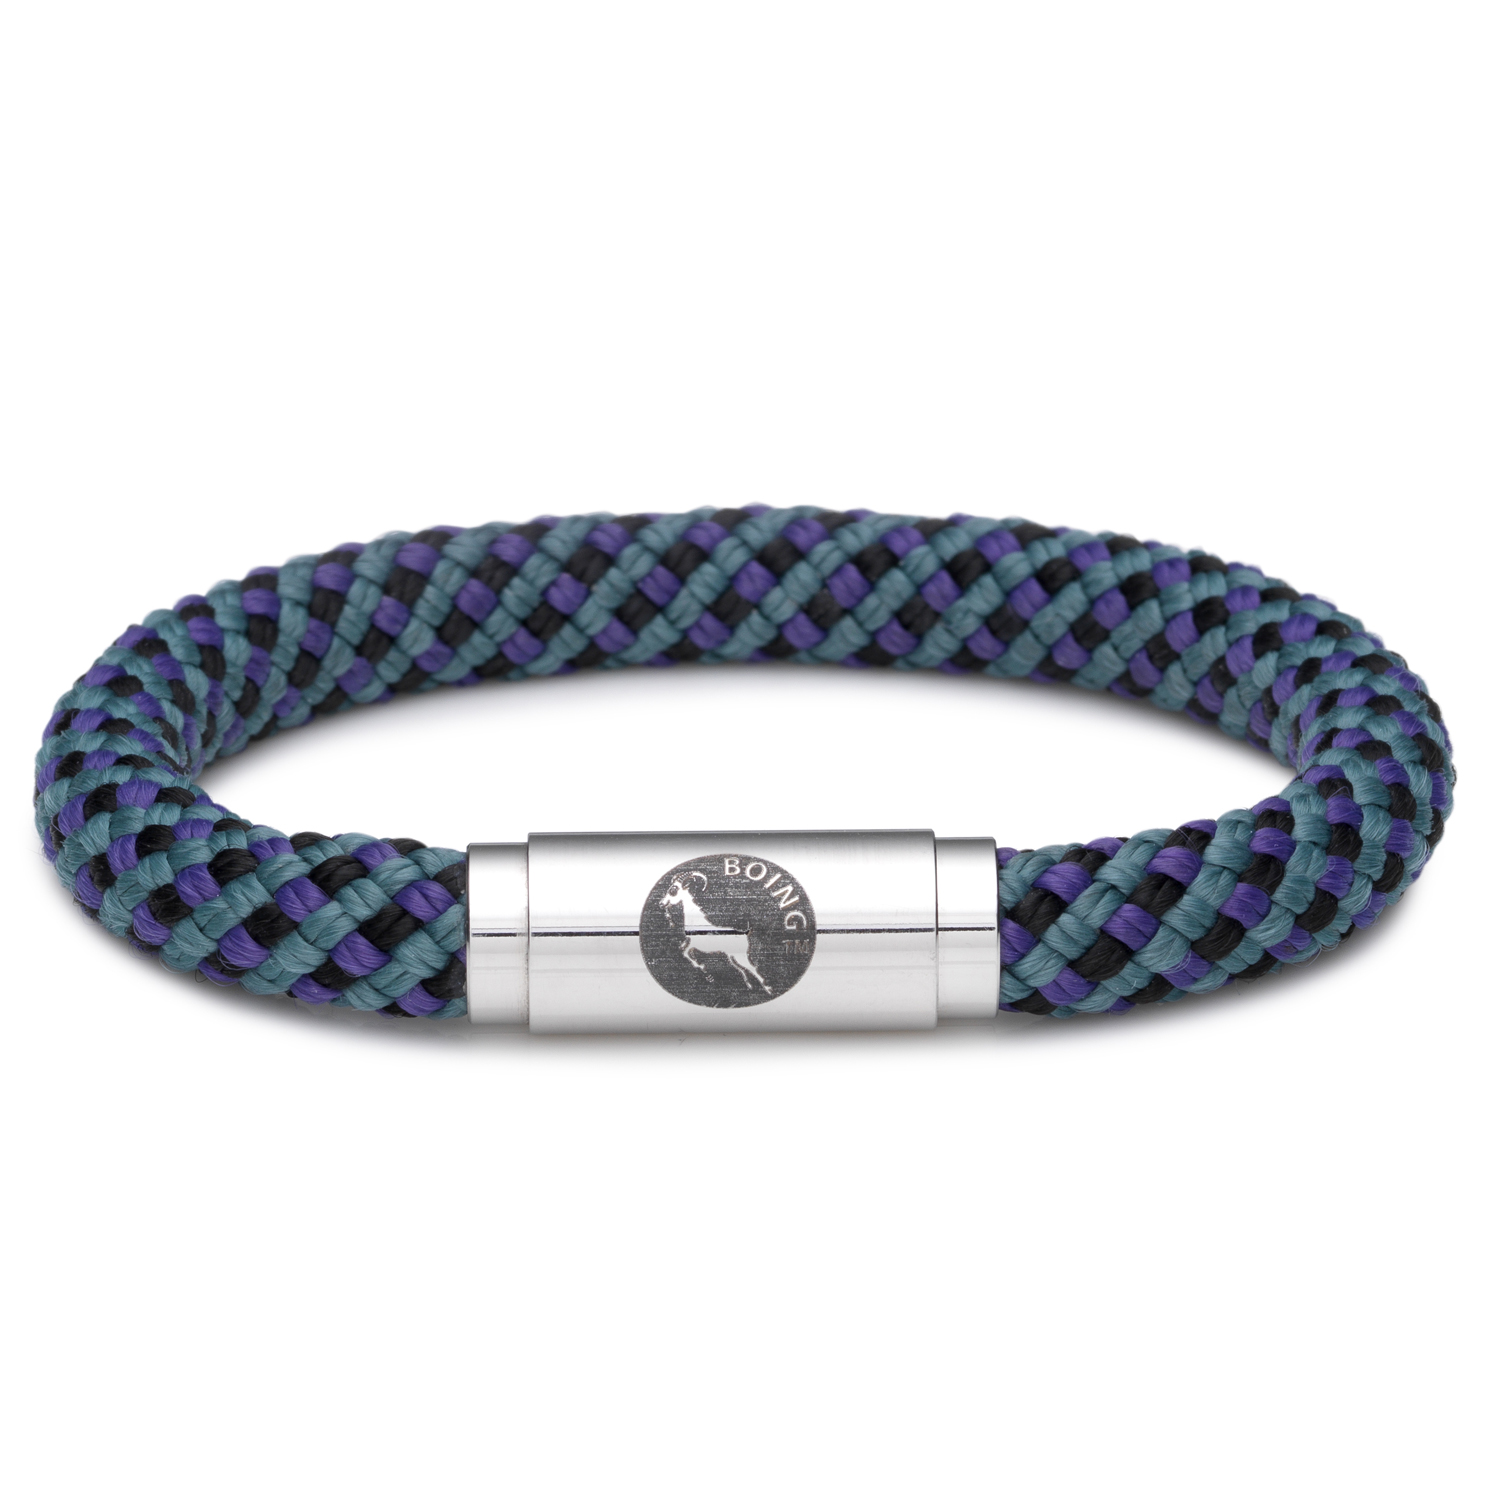 Boing – Middy XXLarge Wristband in Teal